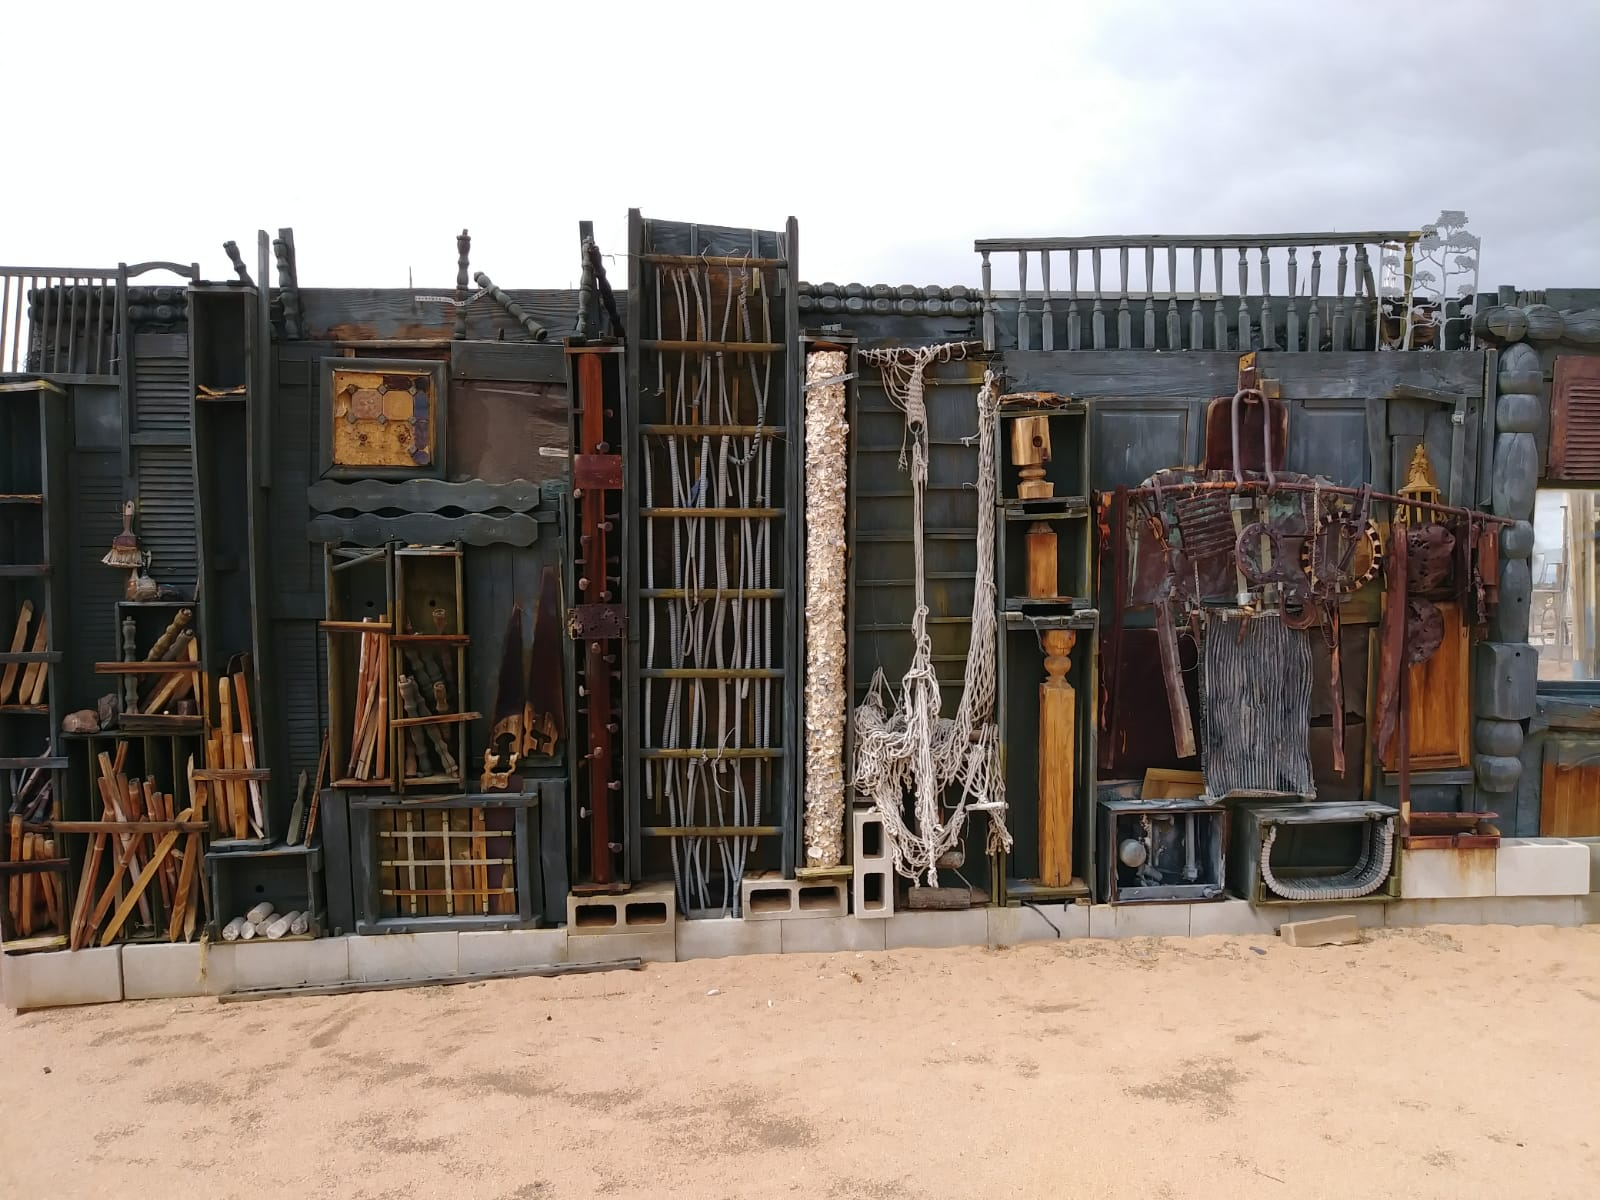 Noah Purifoy Outdoor Desert Art Museum of Assemblage Art - 63030 Blair Lane, Joshua TreeOpen daily sunup to sundown